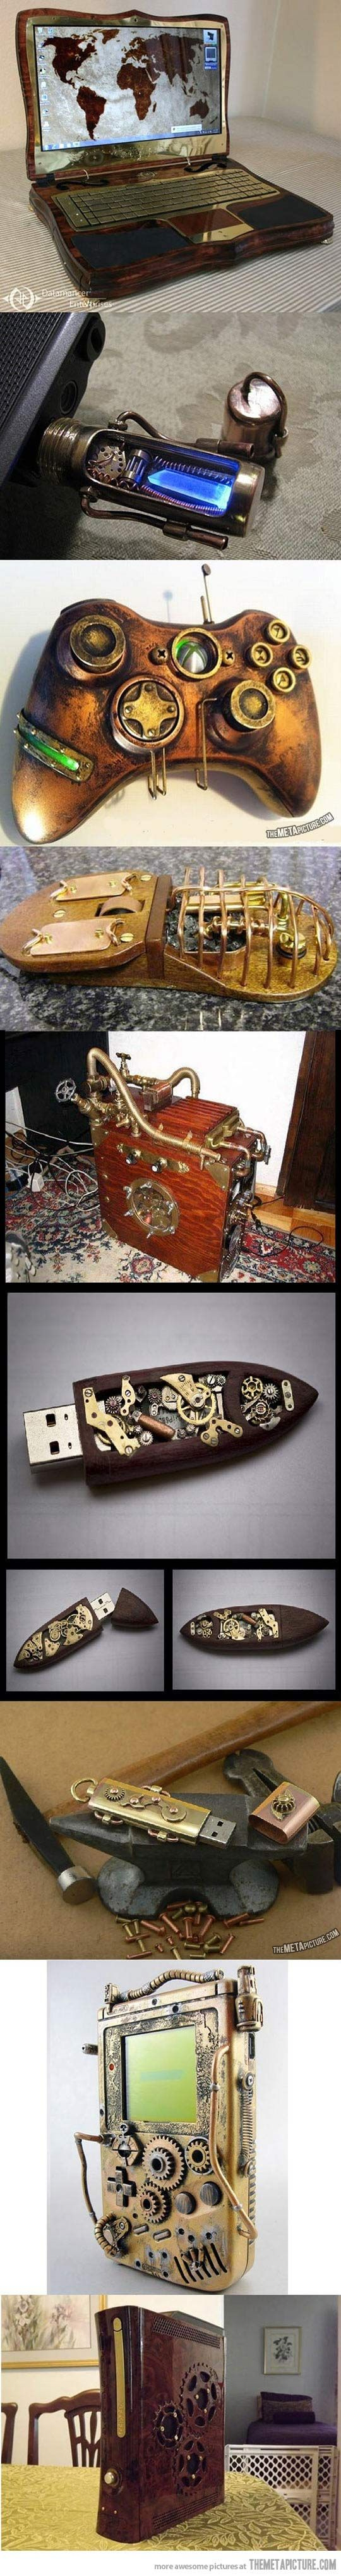 Steampunk gadgets really complete the look. Why not have fantastic objects of science and magic nestled into alcoves and amongst antique books?